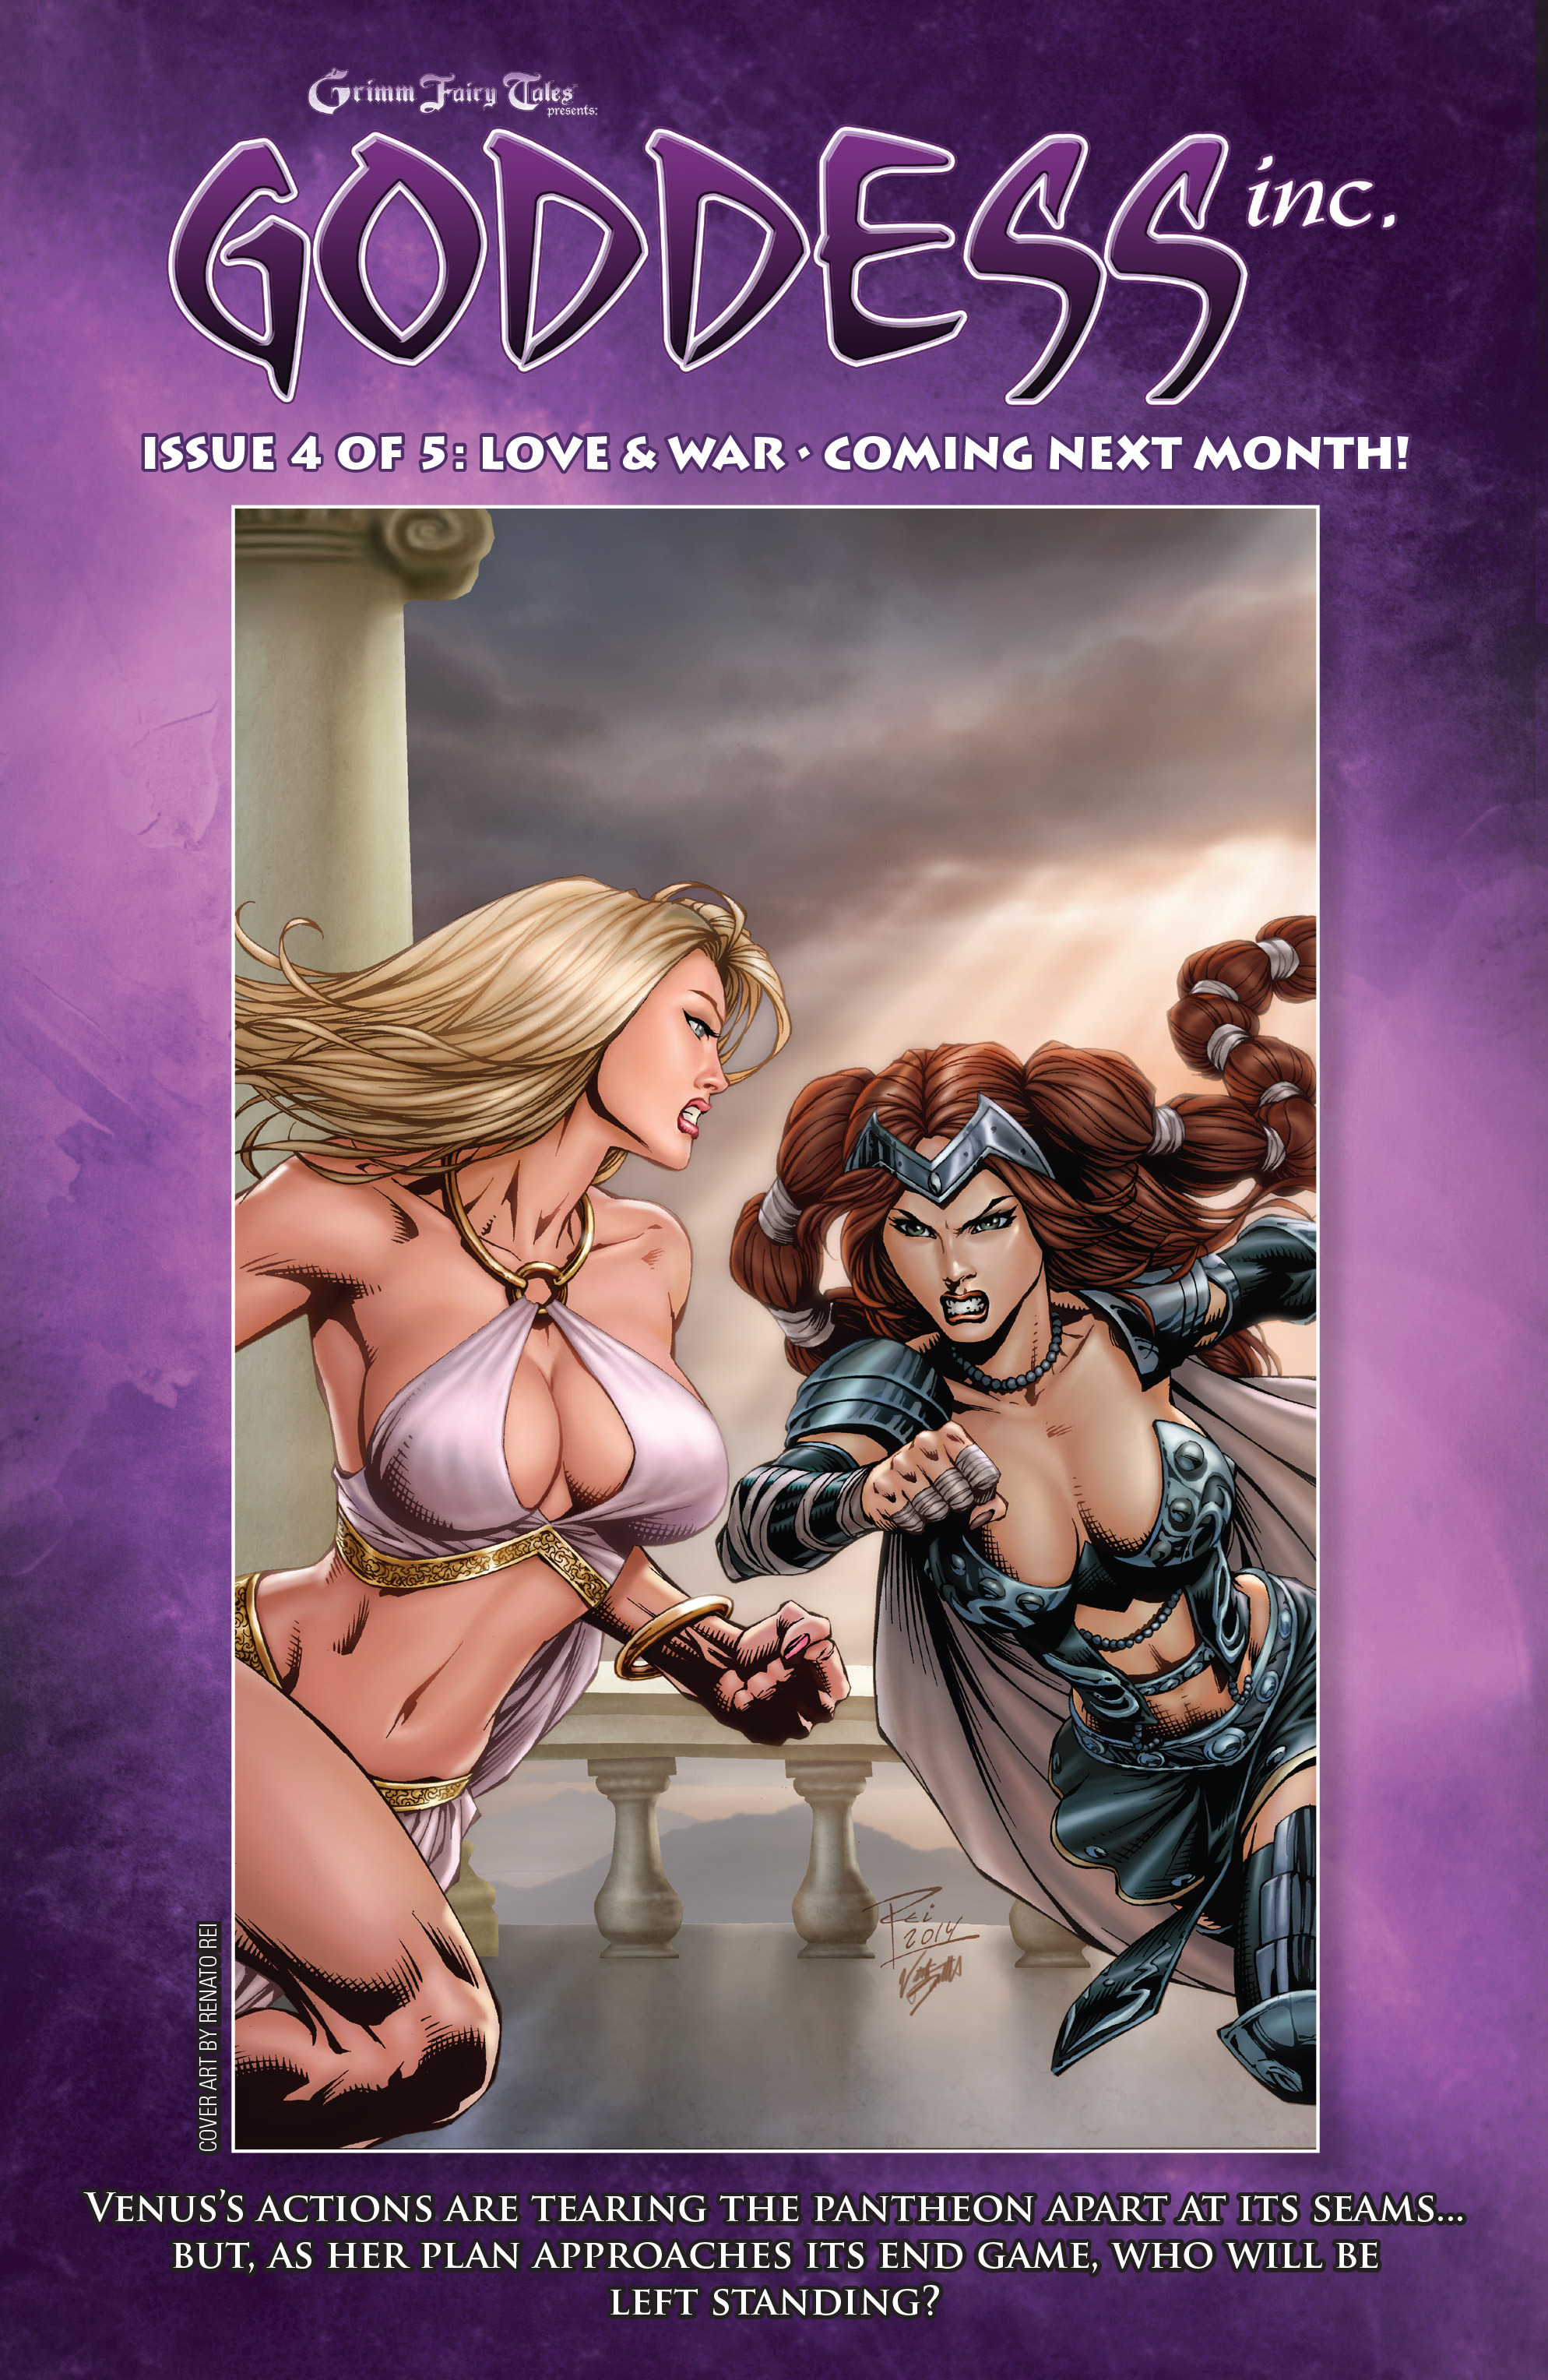 Read online Grimm Fairy Tales presents Goddess Inc. comic -  Issue #3 - 25